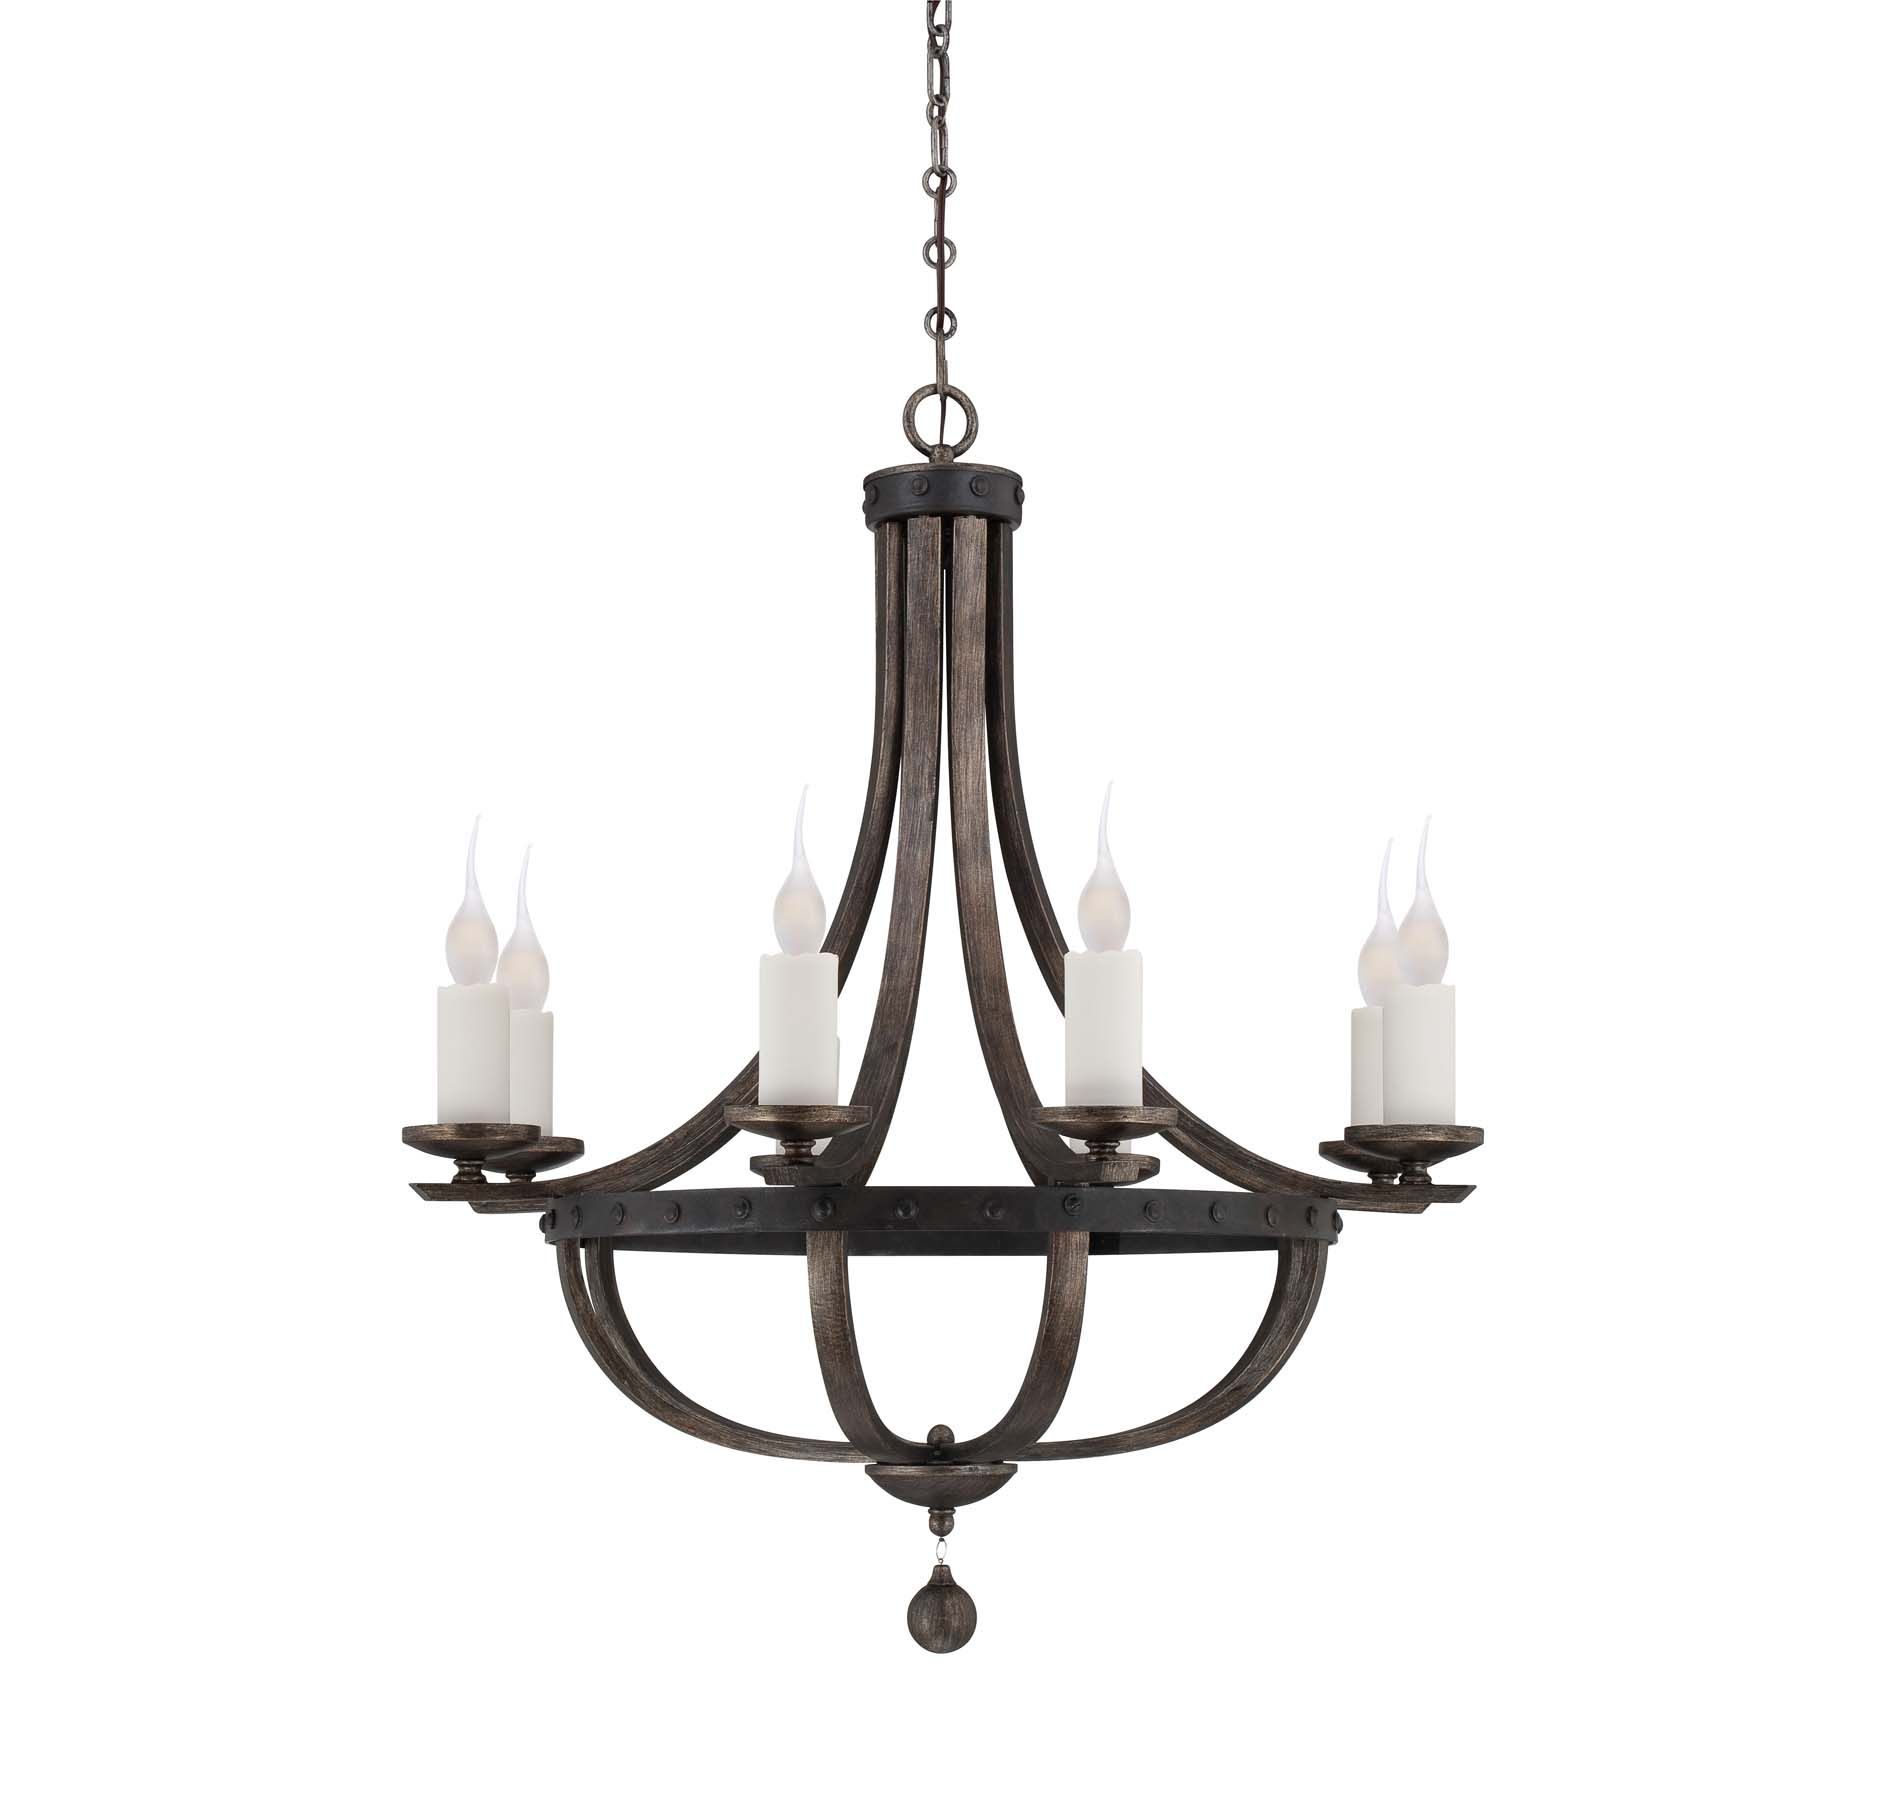 Alsace 8 Light Chandelier $756 at House of Antique Hardware